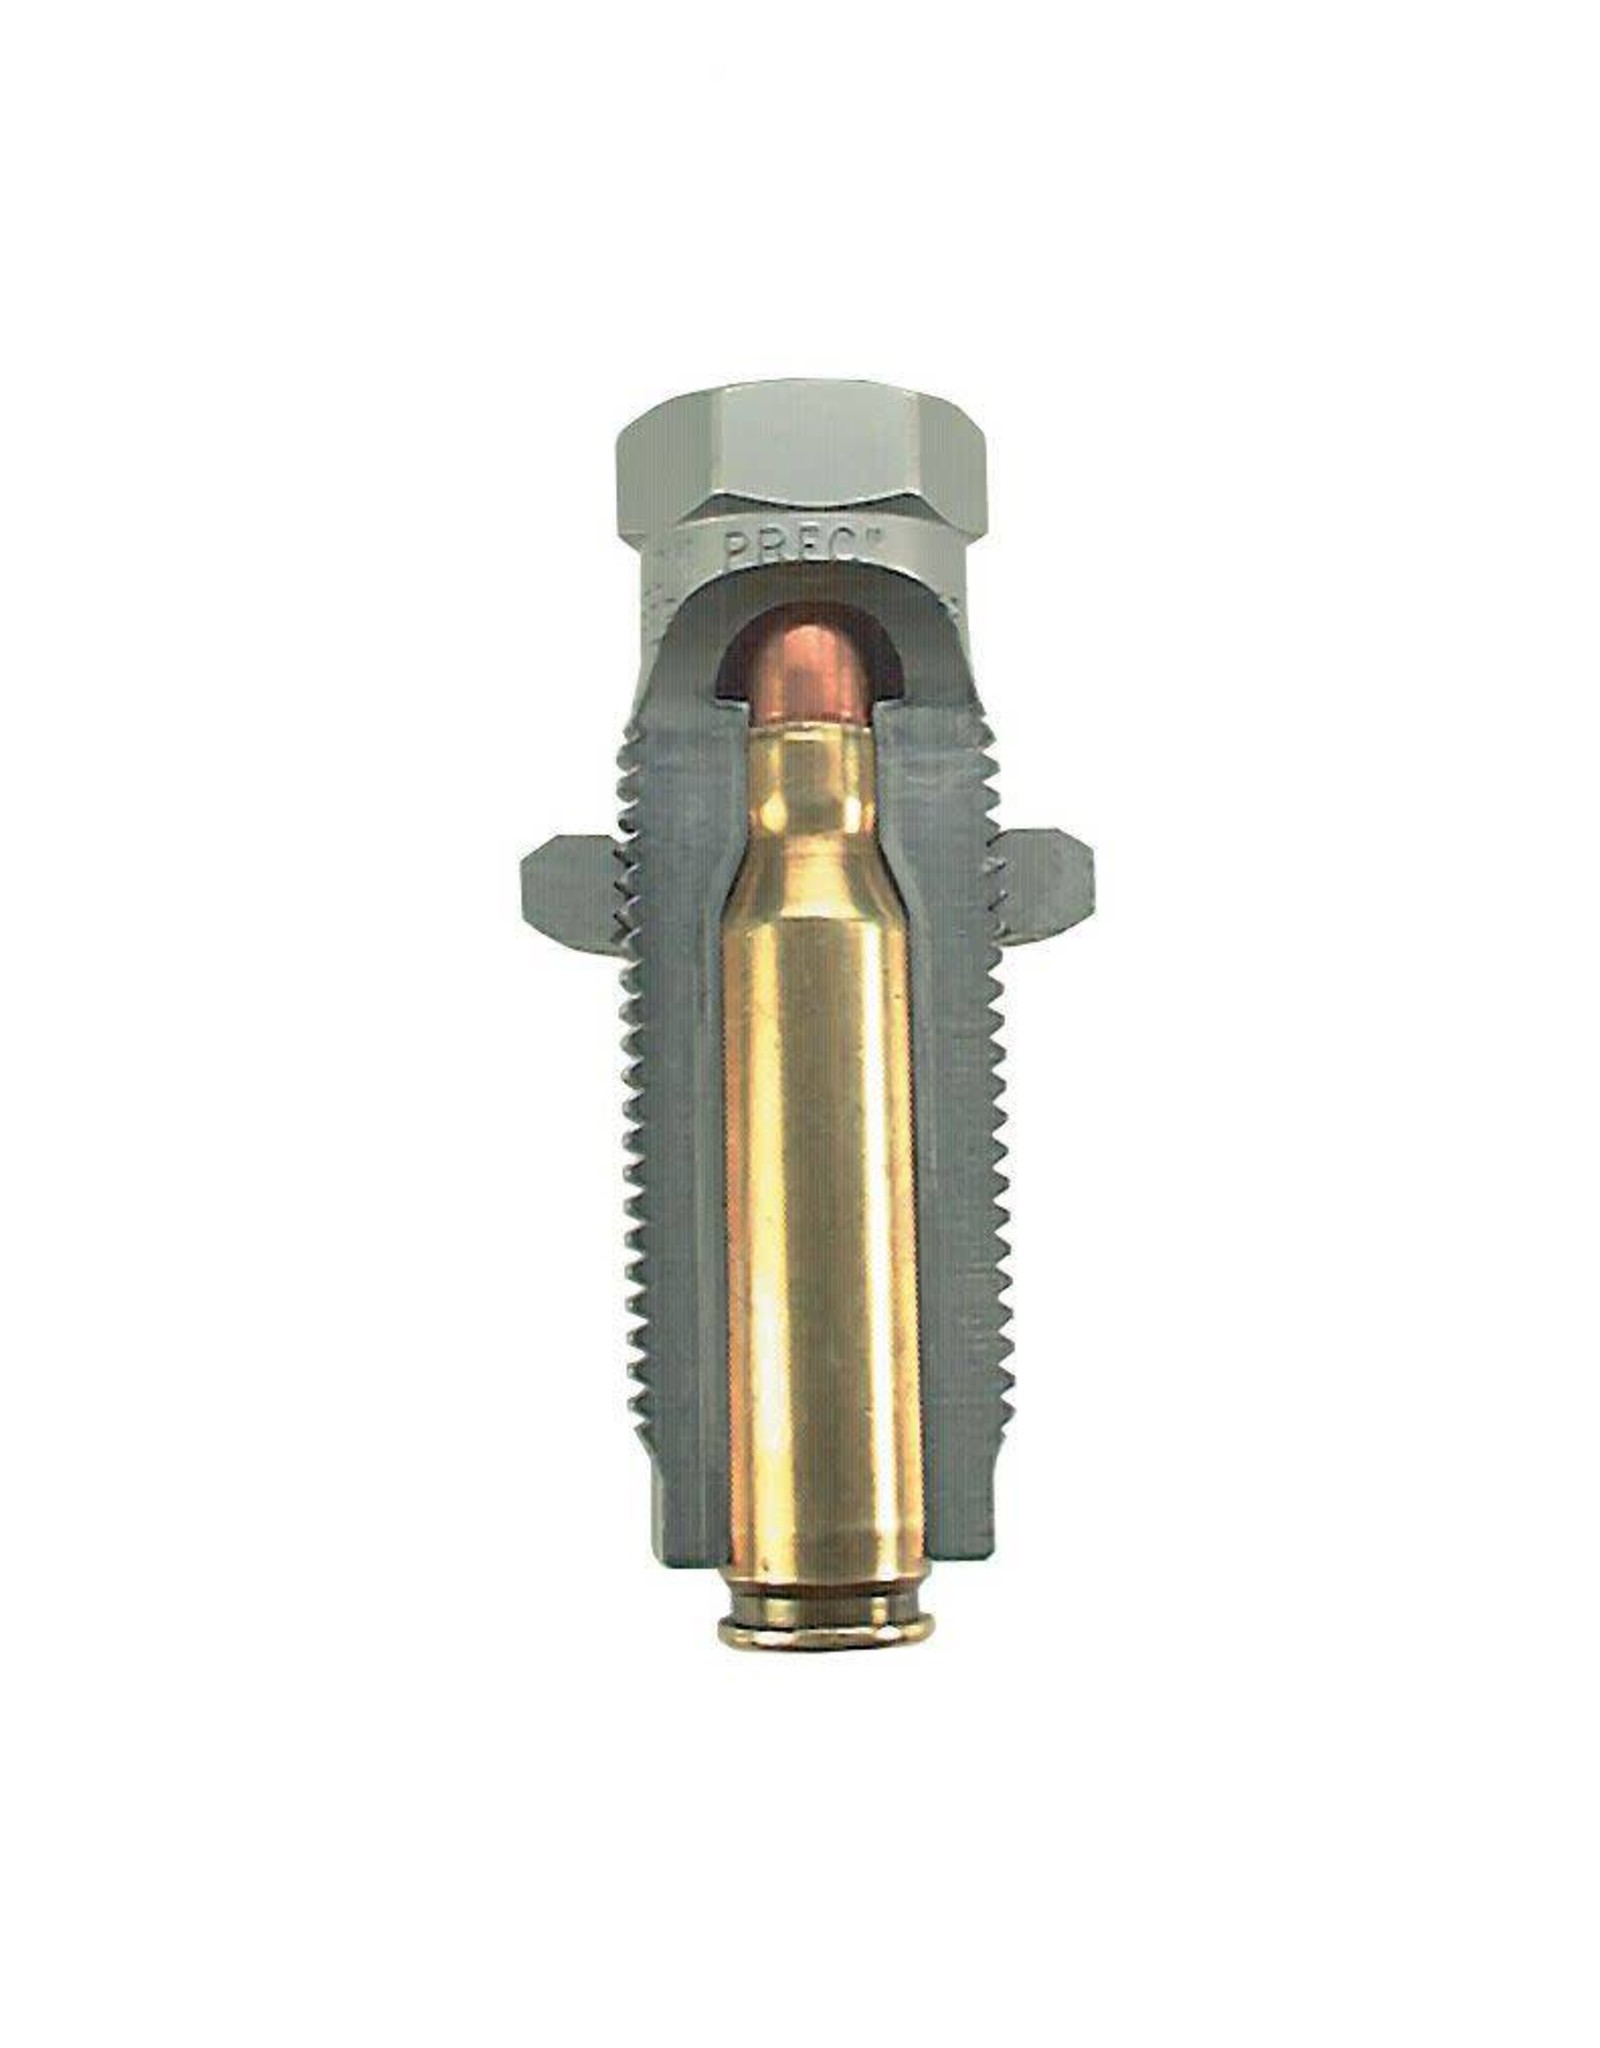 Dillon Precision Dillon Individual Rifle Dies - Crimp